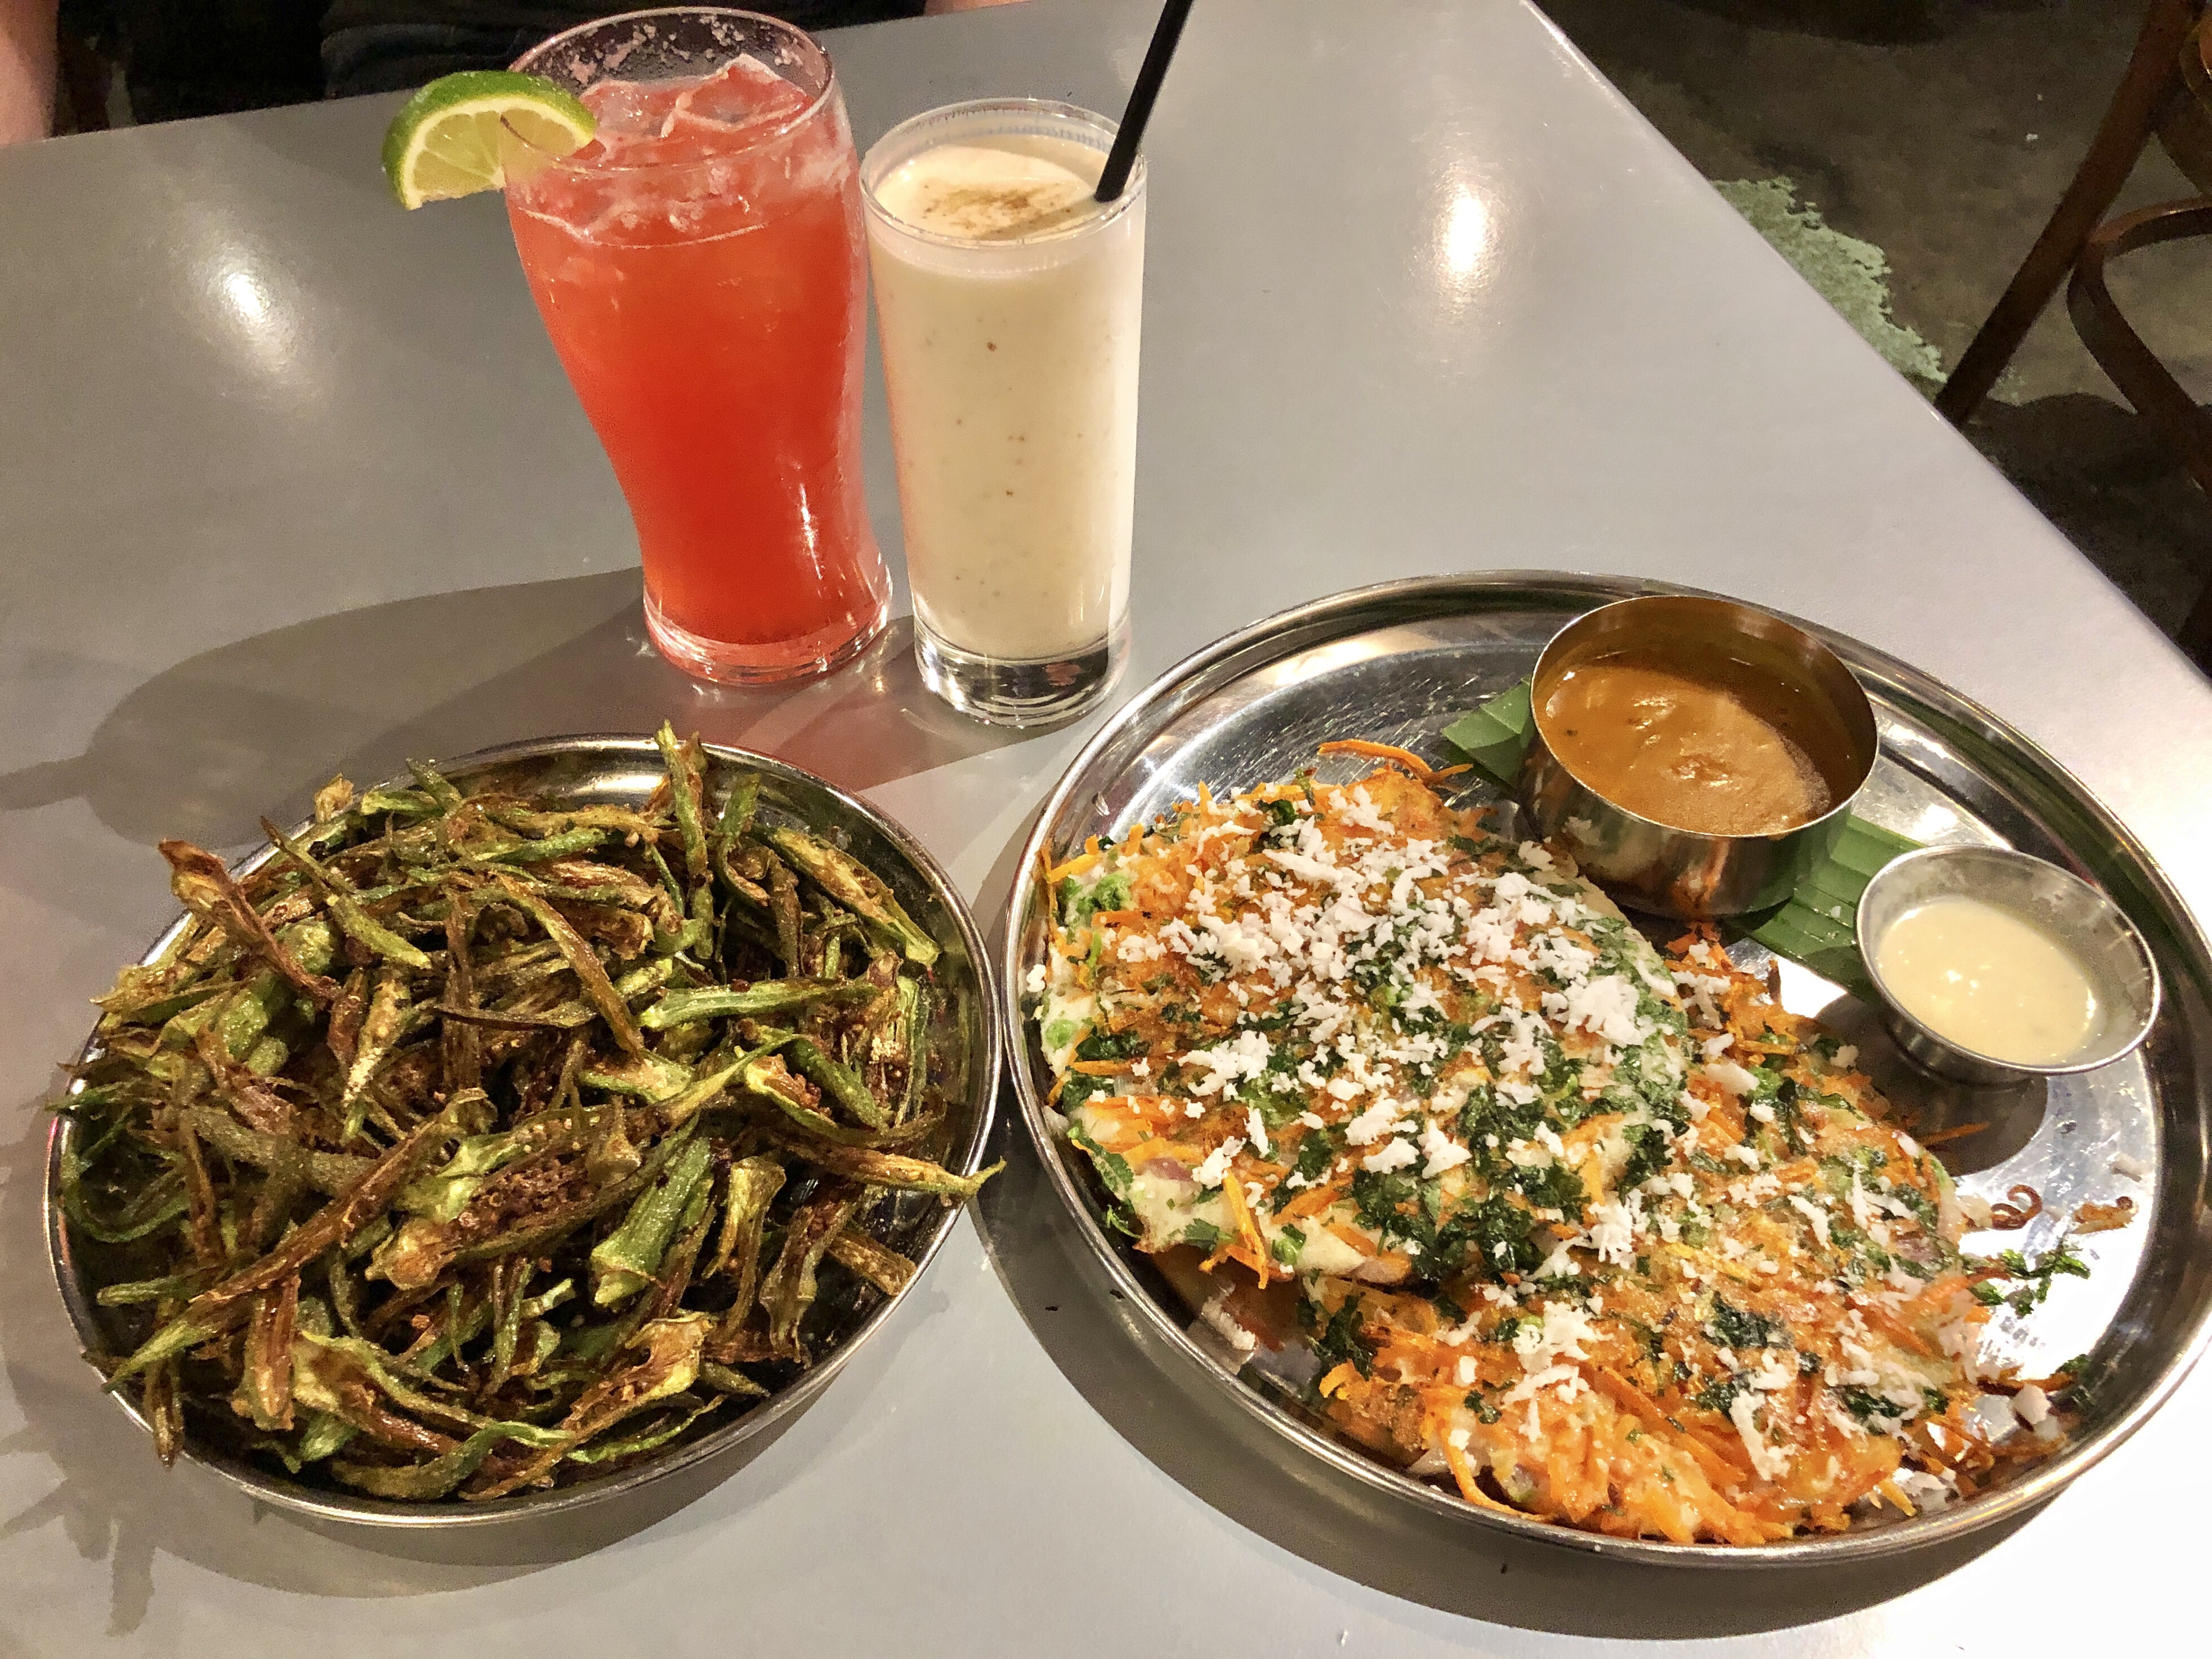 Matchstick okra fries and vegetable uttapam at Chai Pani in Atlanta